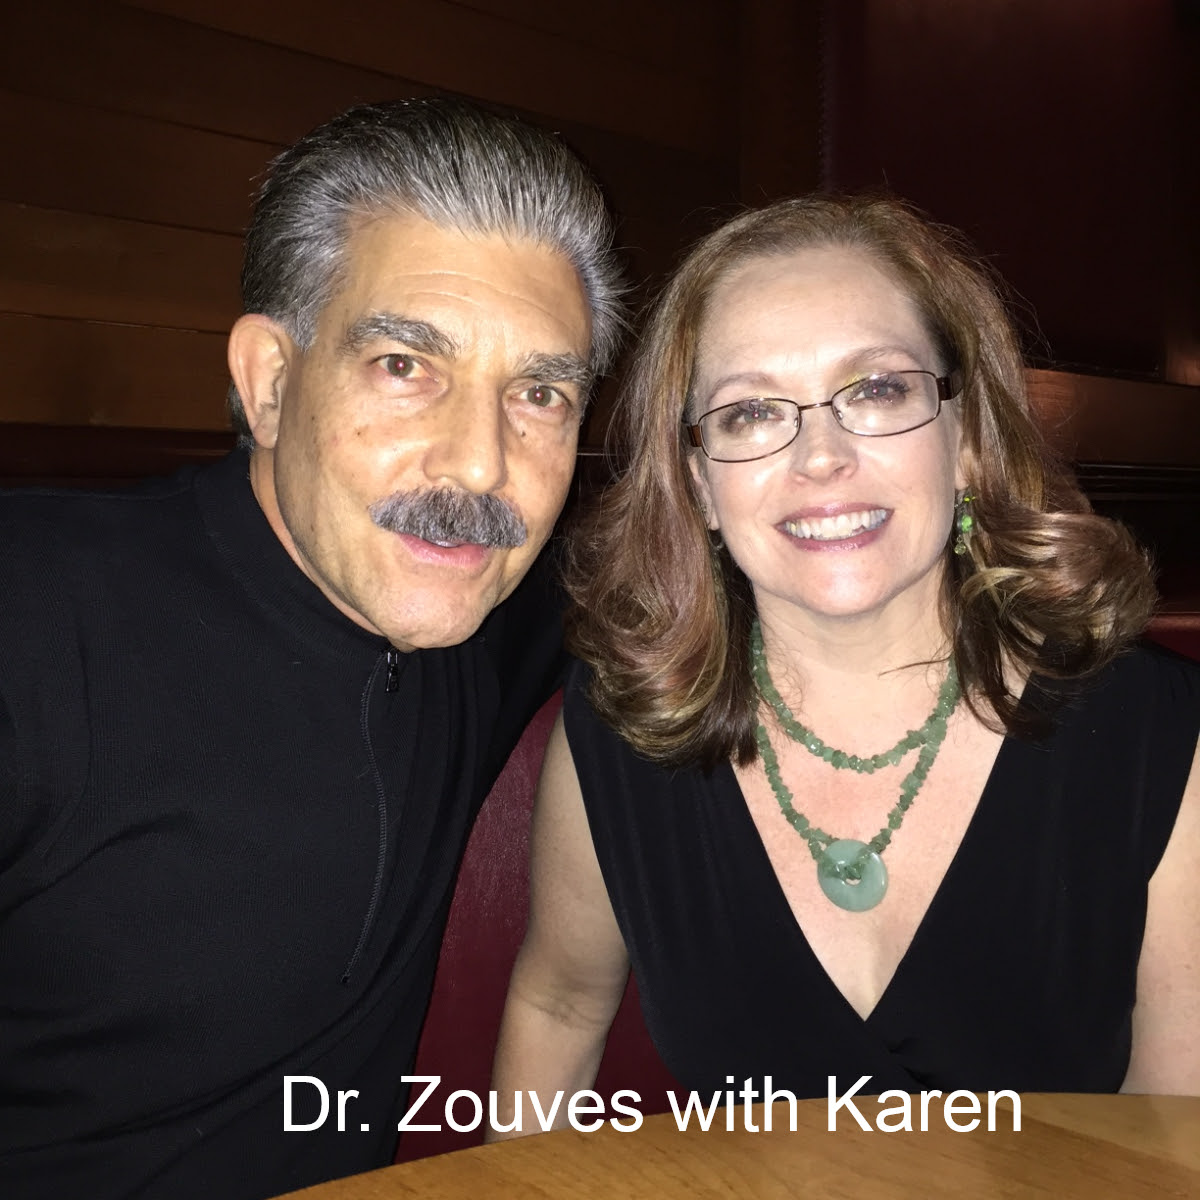 Dr Zouves with Karen